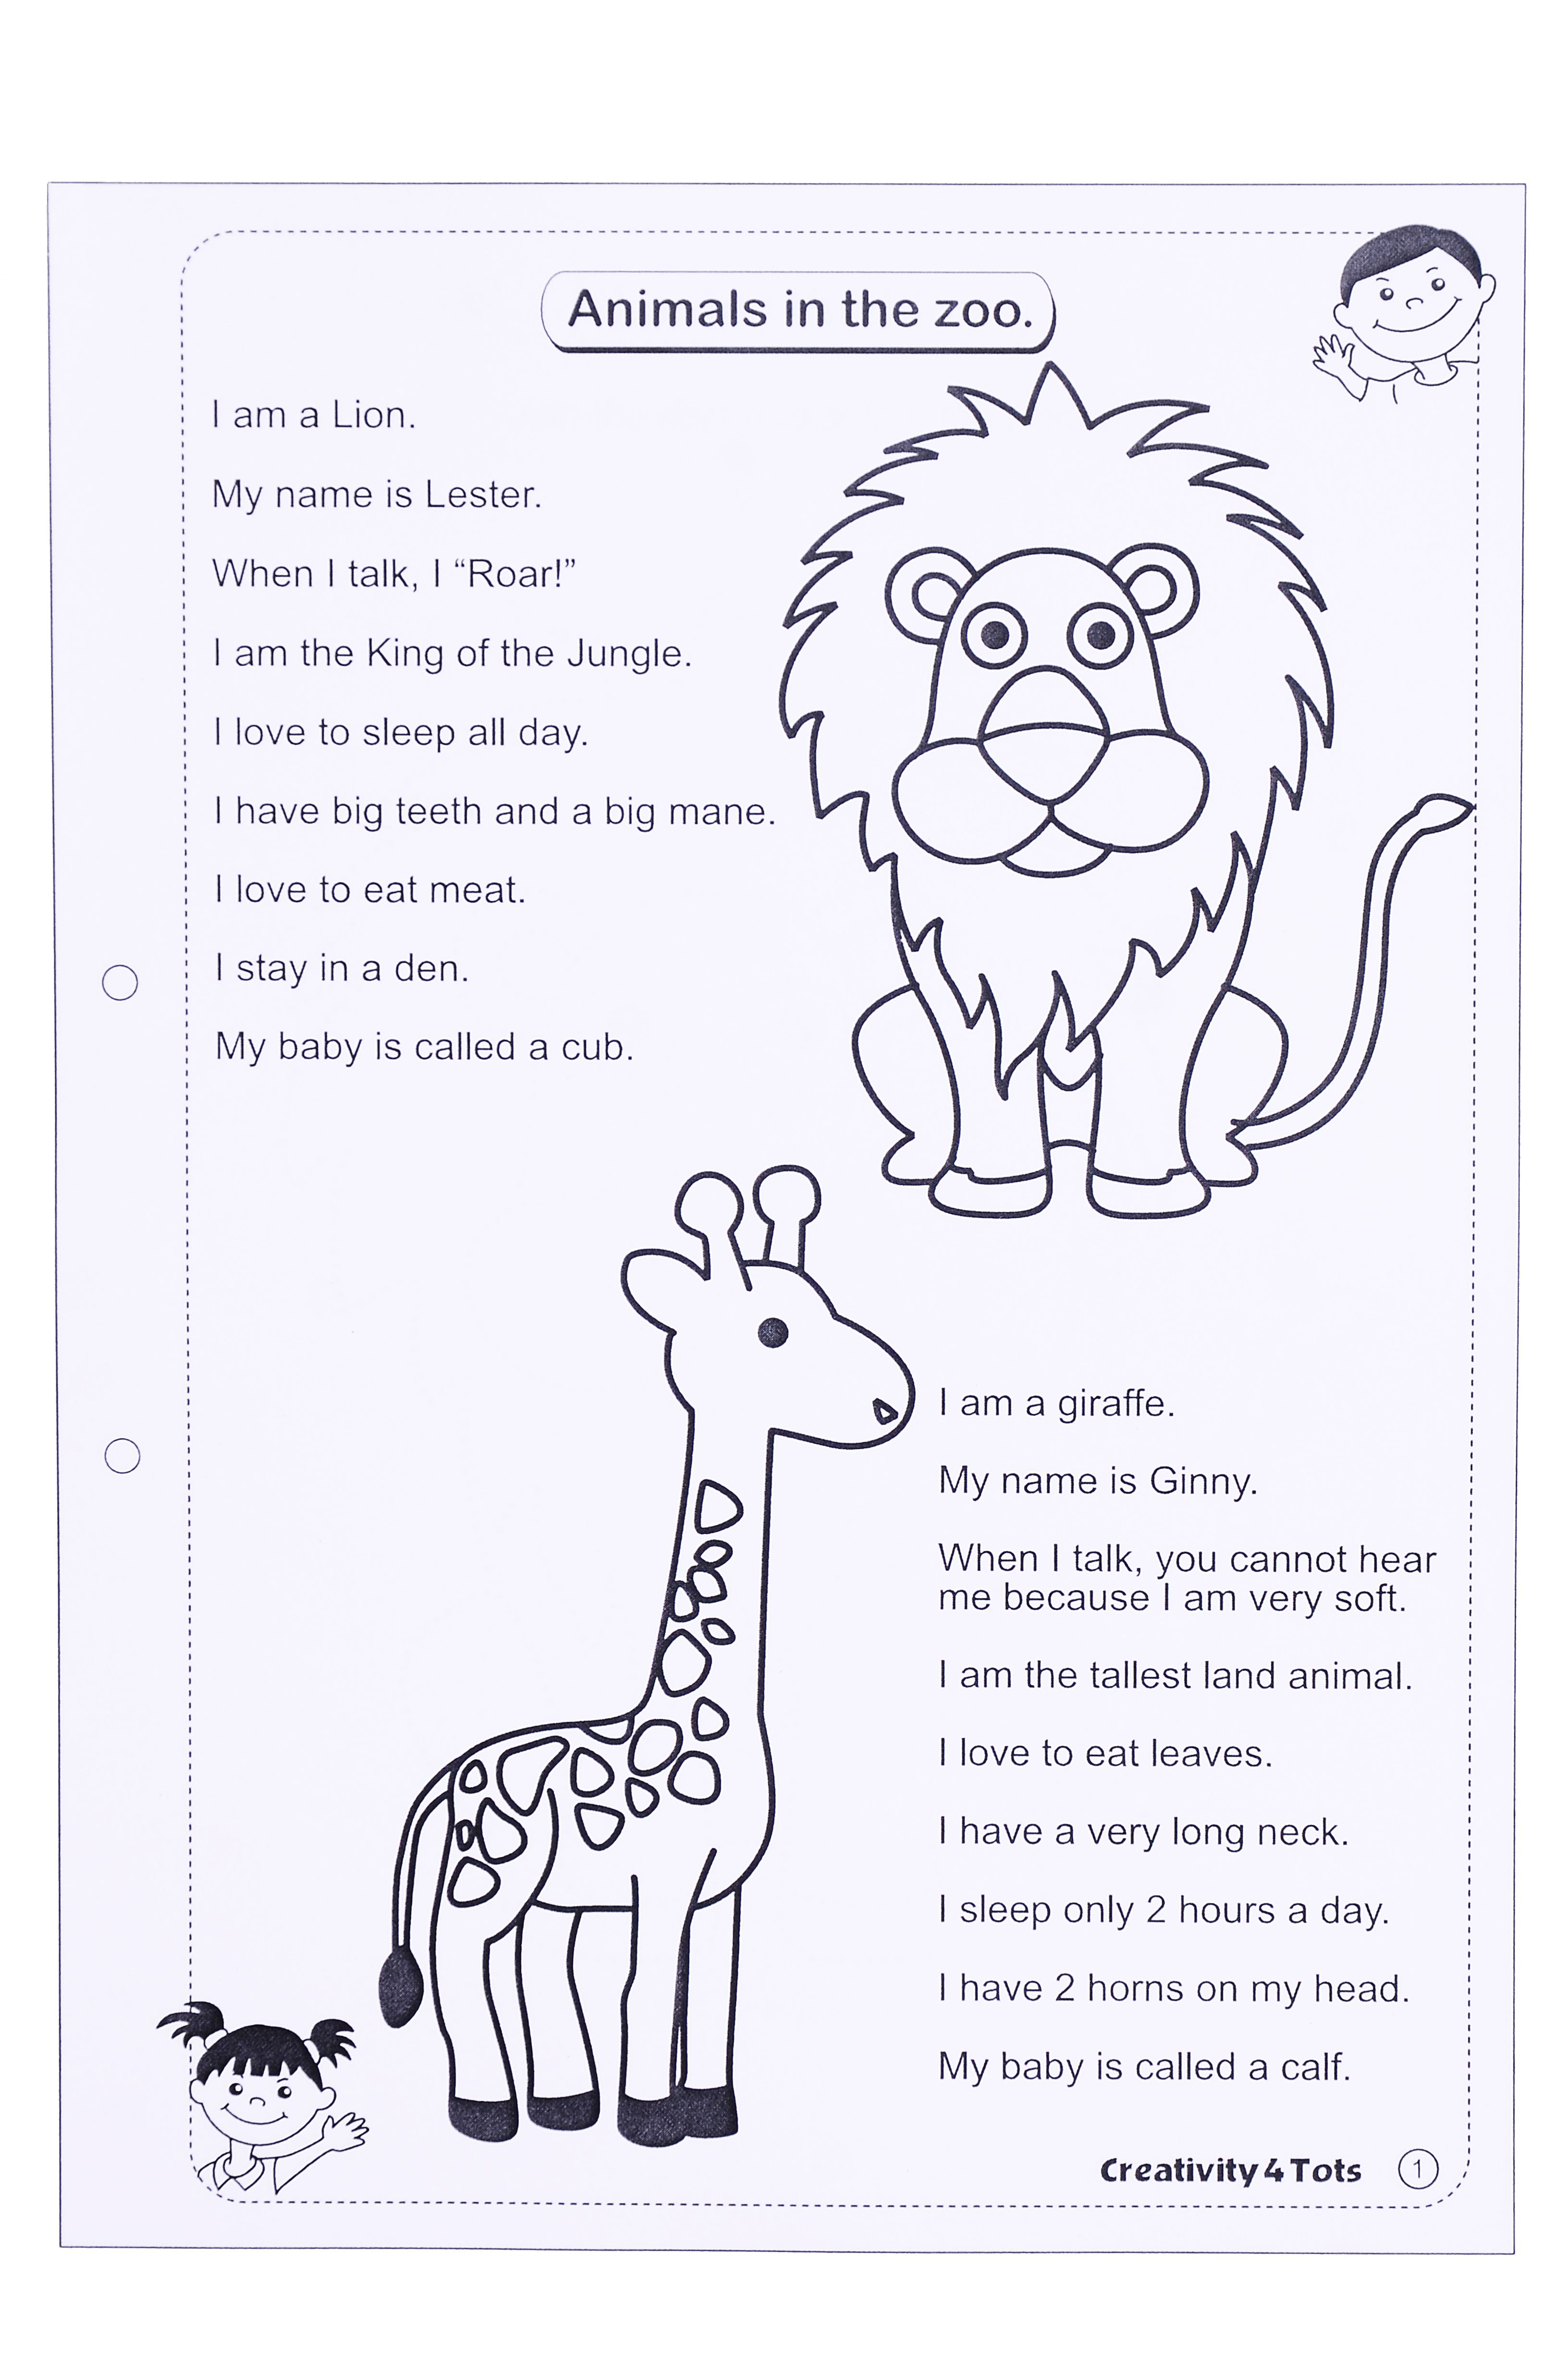 zoo animals worksheet this worksheet is designed to teach the child about zoo animals the. Black Bedroom Furniture Sets. Home Design Ideas